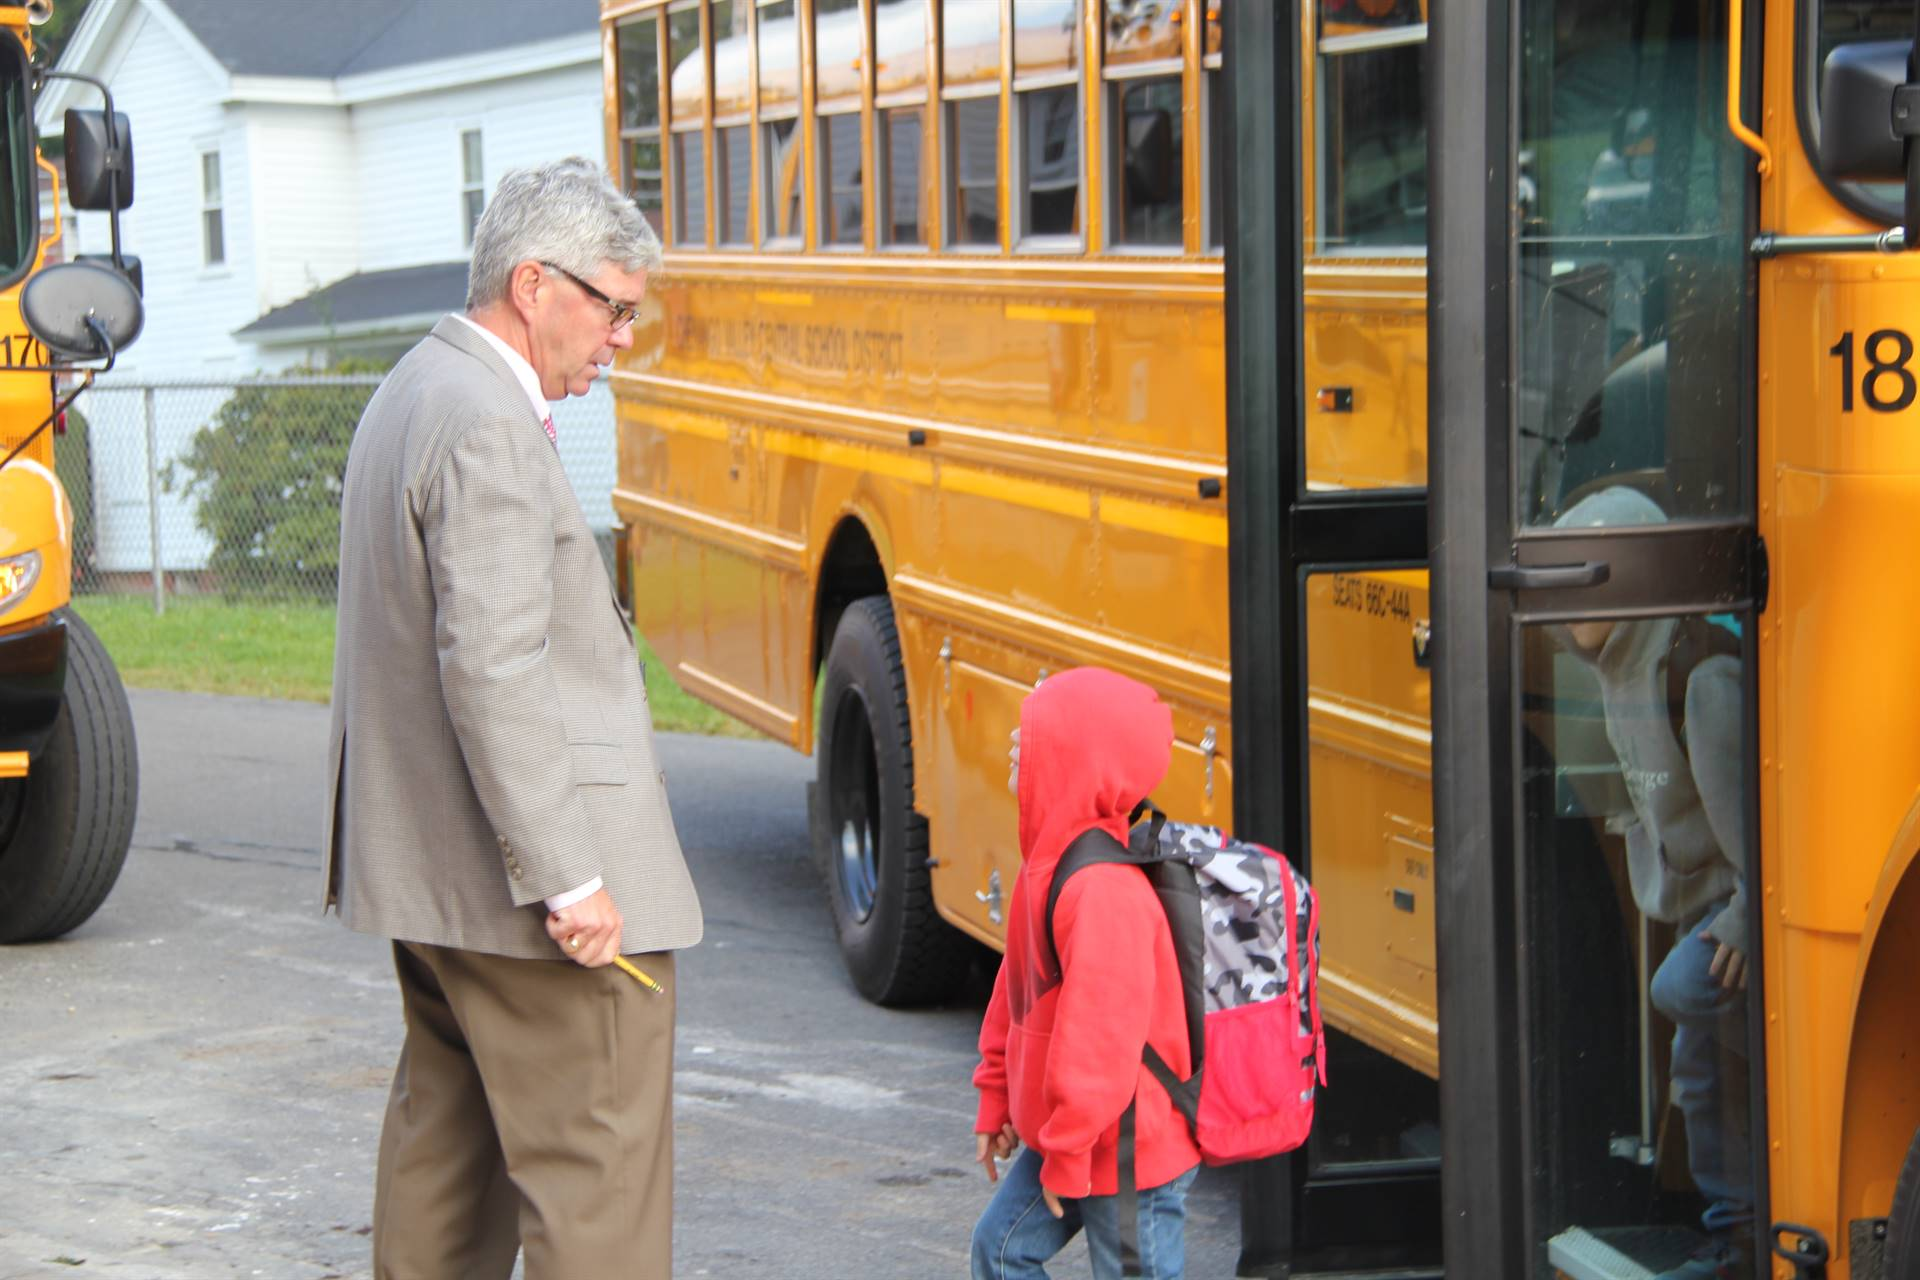 principal jim pritchard welcomes students getting off bus to elementary school